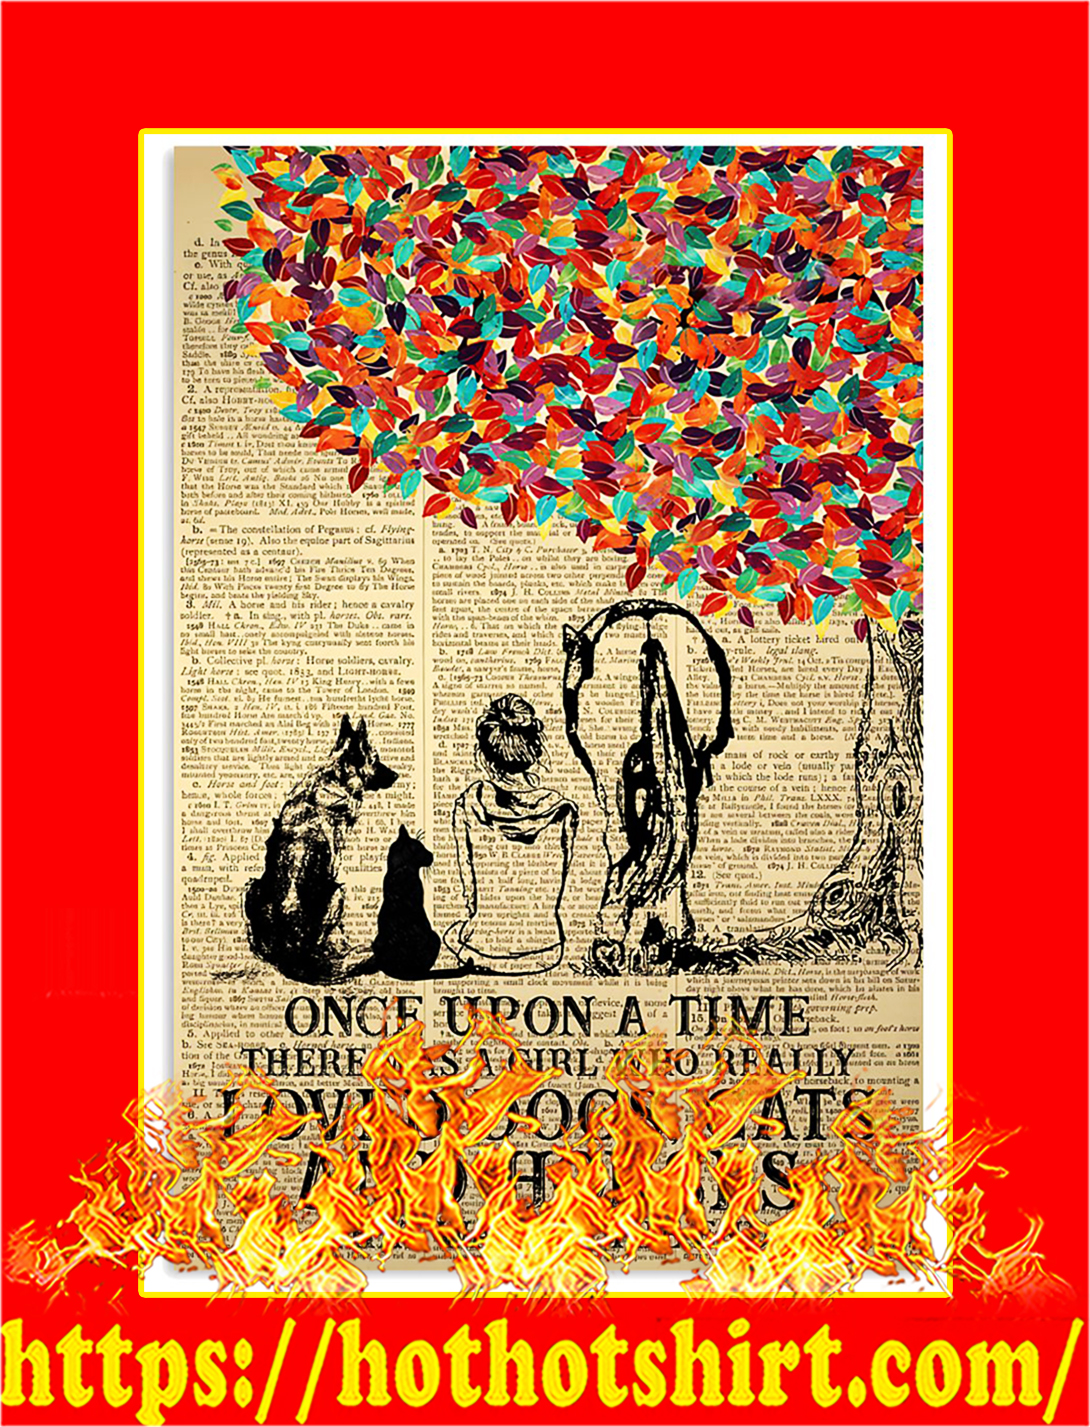 Once upon a time there was a girl who really loved dogs cats and horses poster - A1